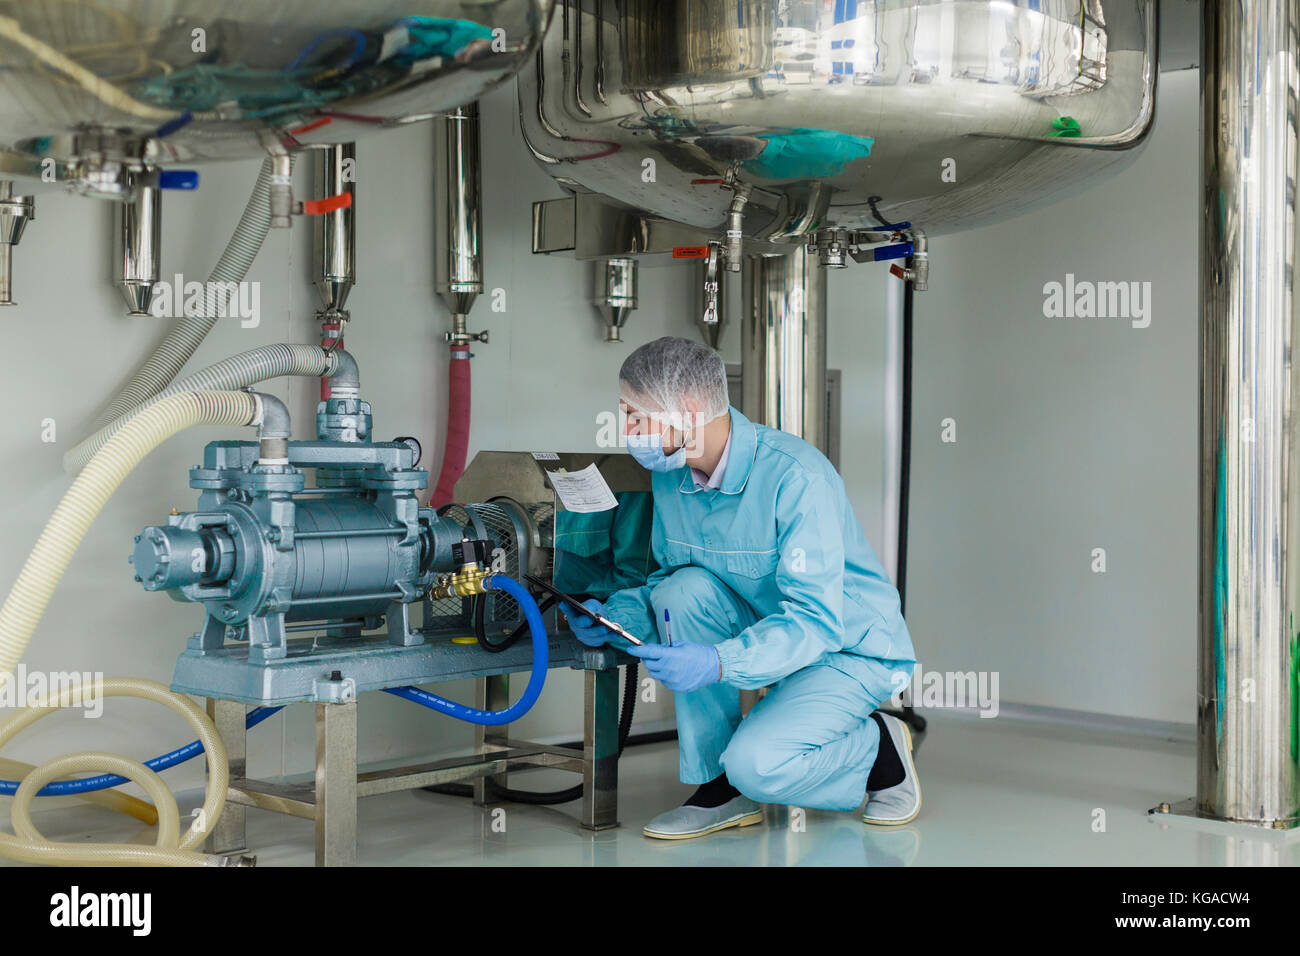 High Pressure Tank Stock Photos & High Pressure Tank Stock Images ...